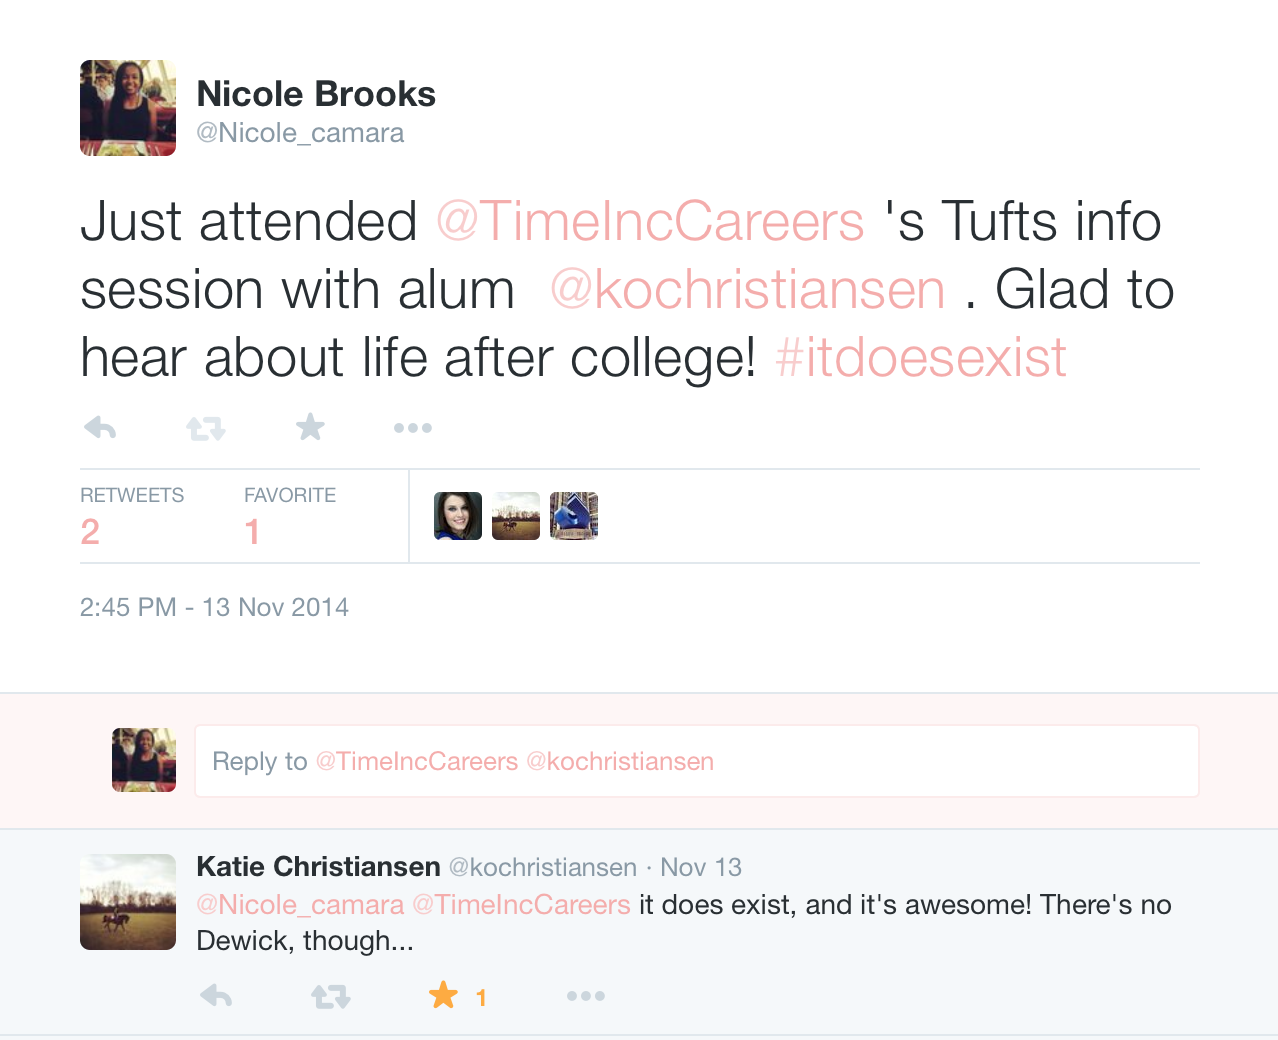 tufts career services cover letters cover letter screen2bshot2b2014 11 192bat